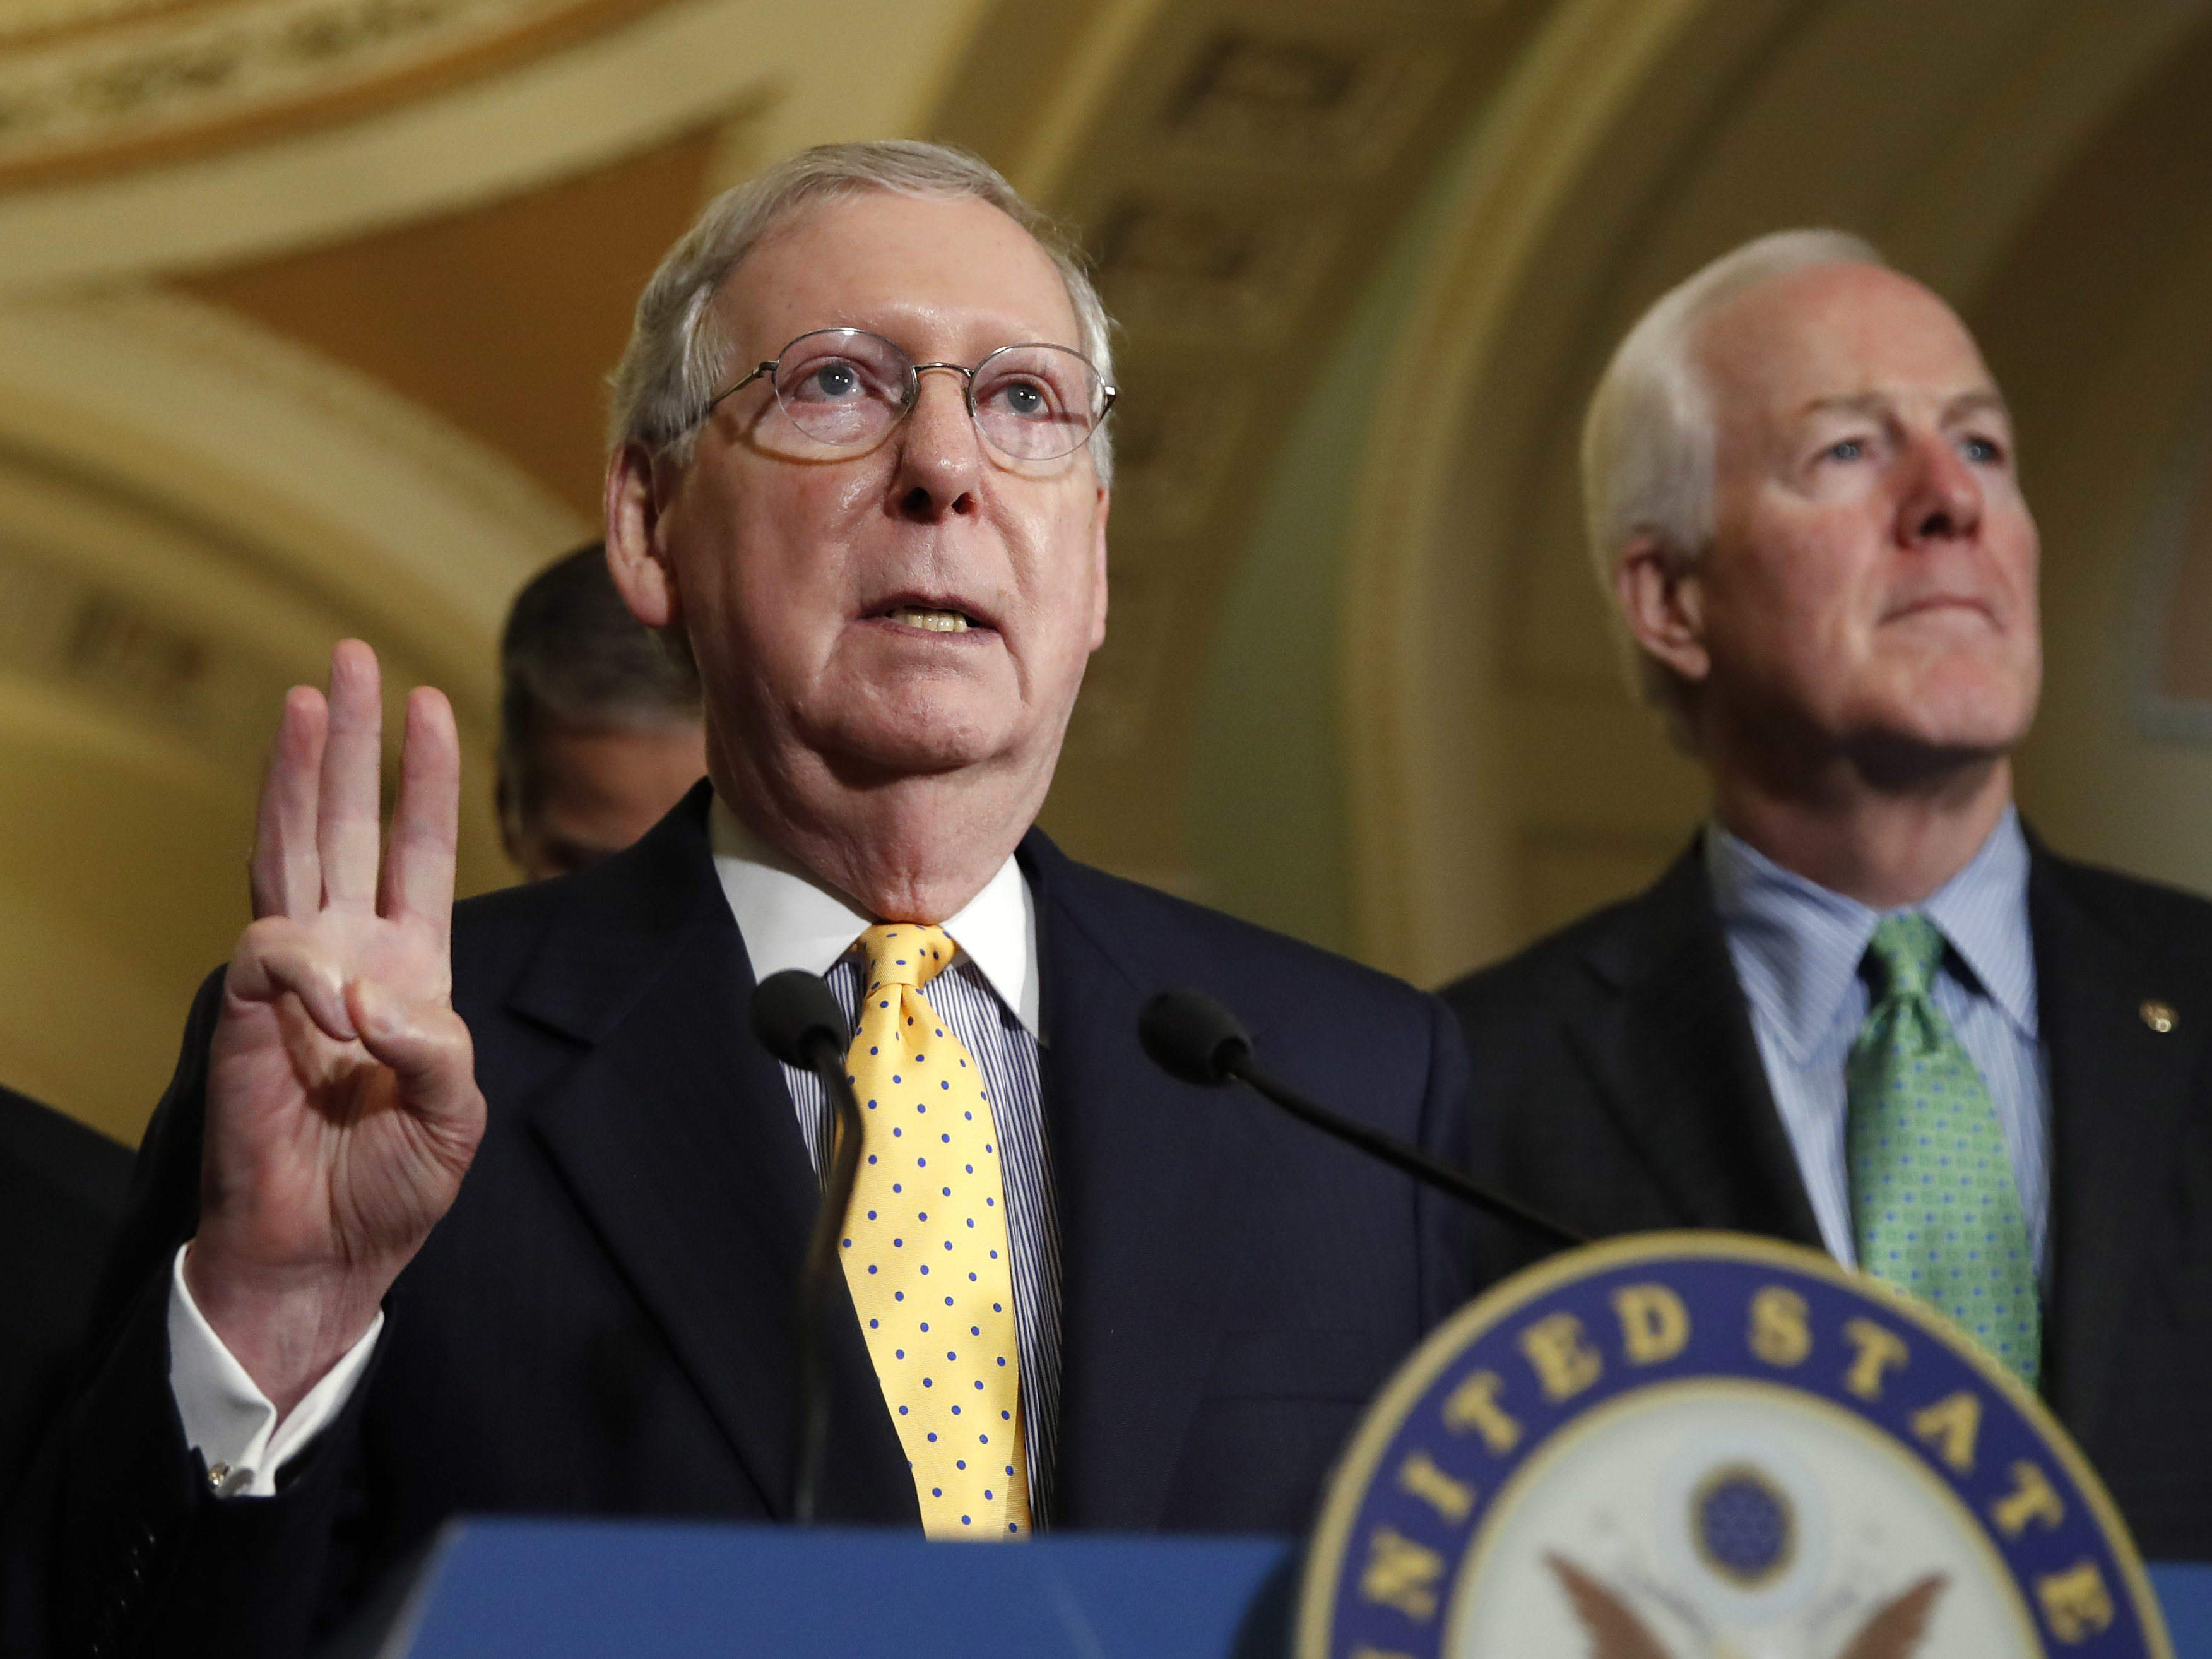 Senate Majority Leader Mitch McConnell of Kentucky speaks to members of the media on Tuesday. On the floor Wednesday, he challenged the Democrats' outcry over Comey's firing. (Jacquelyn Martin/AP)